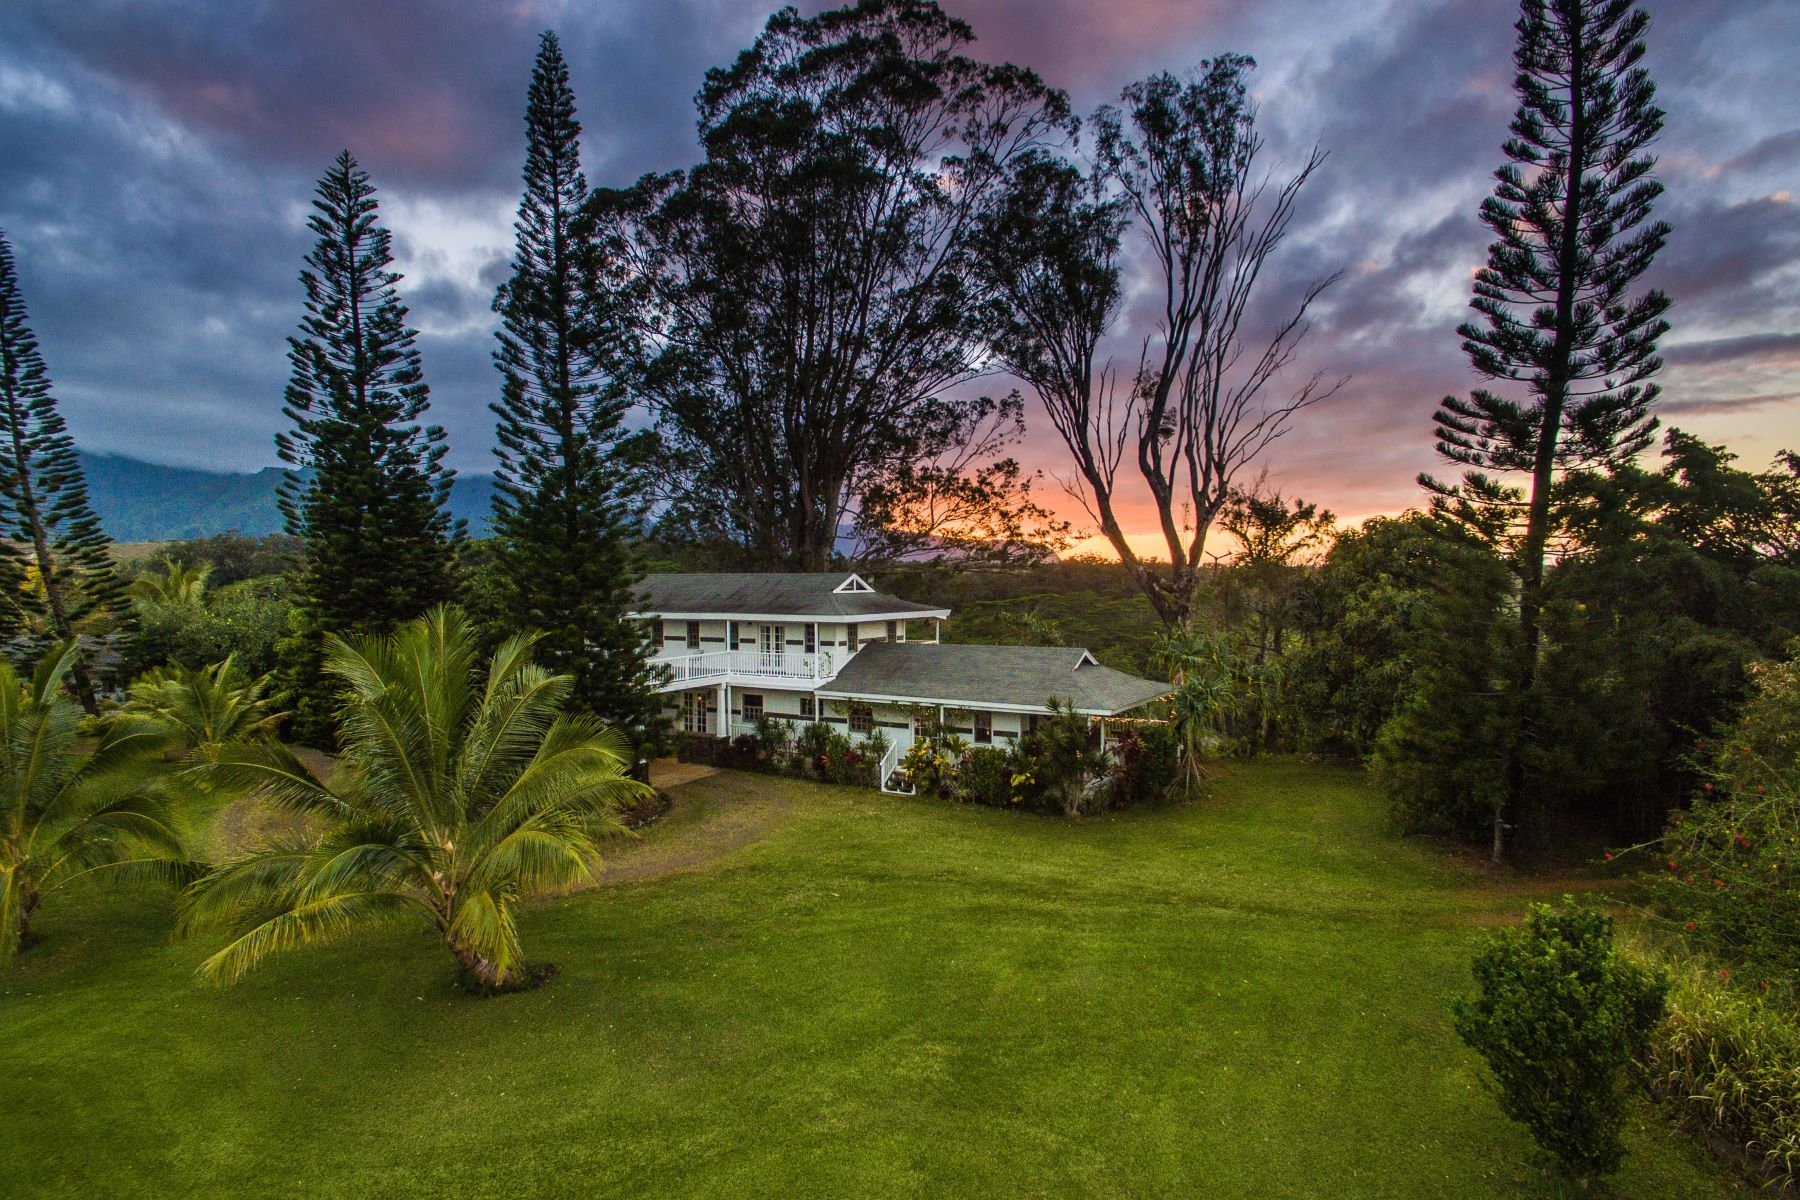 一戸建て のために 売買 アット Kauai 5-Acre Multi-Family Estate with Mountain, Waterfall, Sunset & Valley Views 5150 Kahiliholo Road #A, Kilauea, ハワイ, 96754 アメリカ合衆国